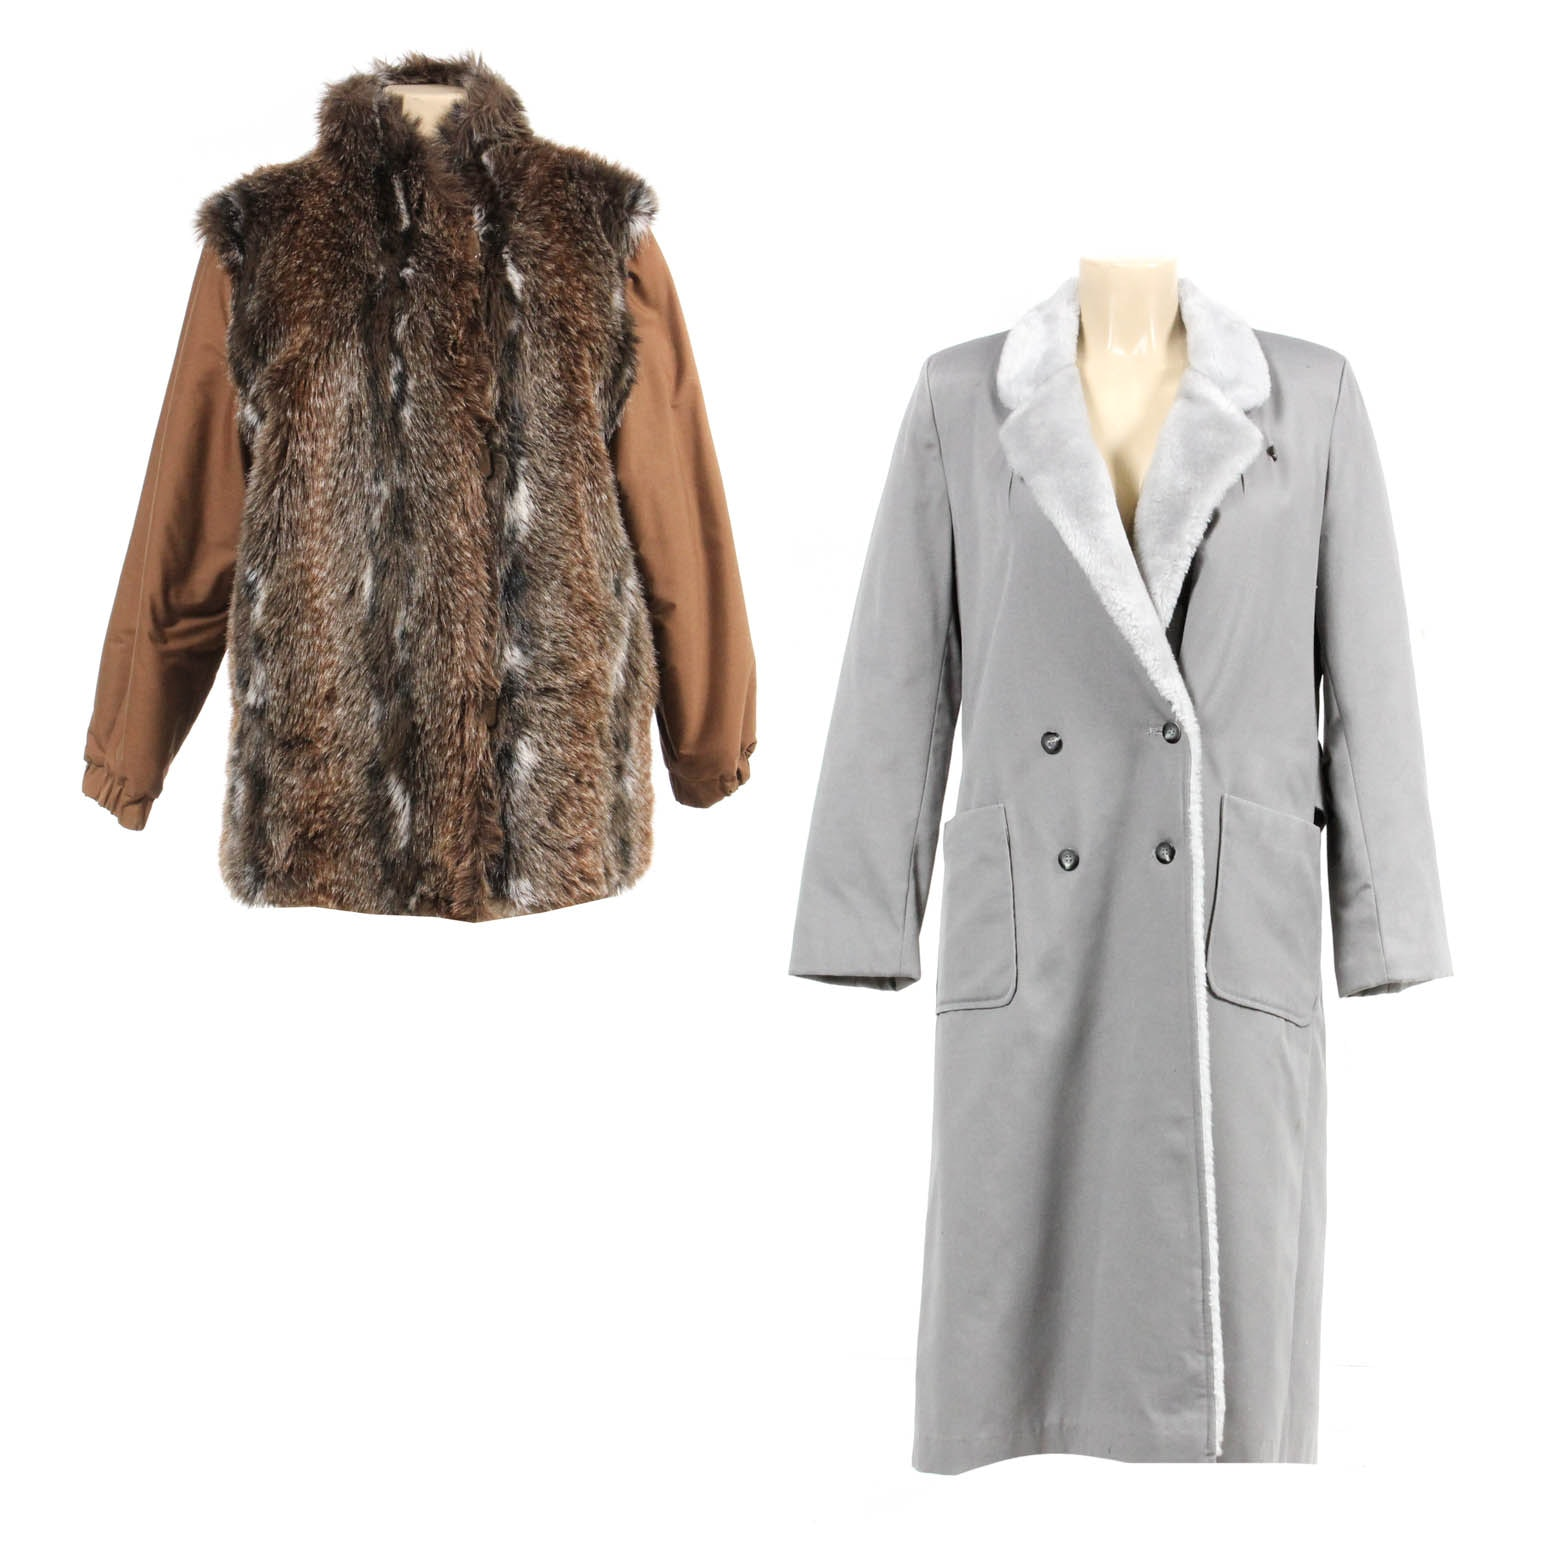 Pair of Faux Fur and Faux Shearling Coats